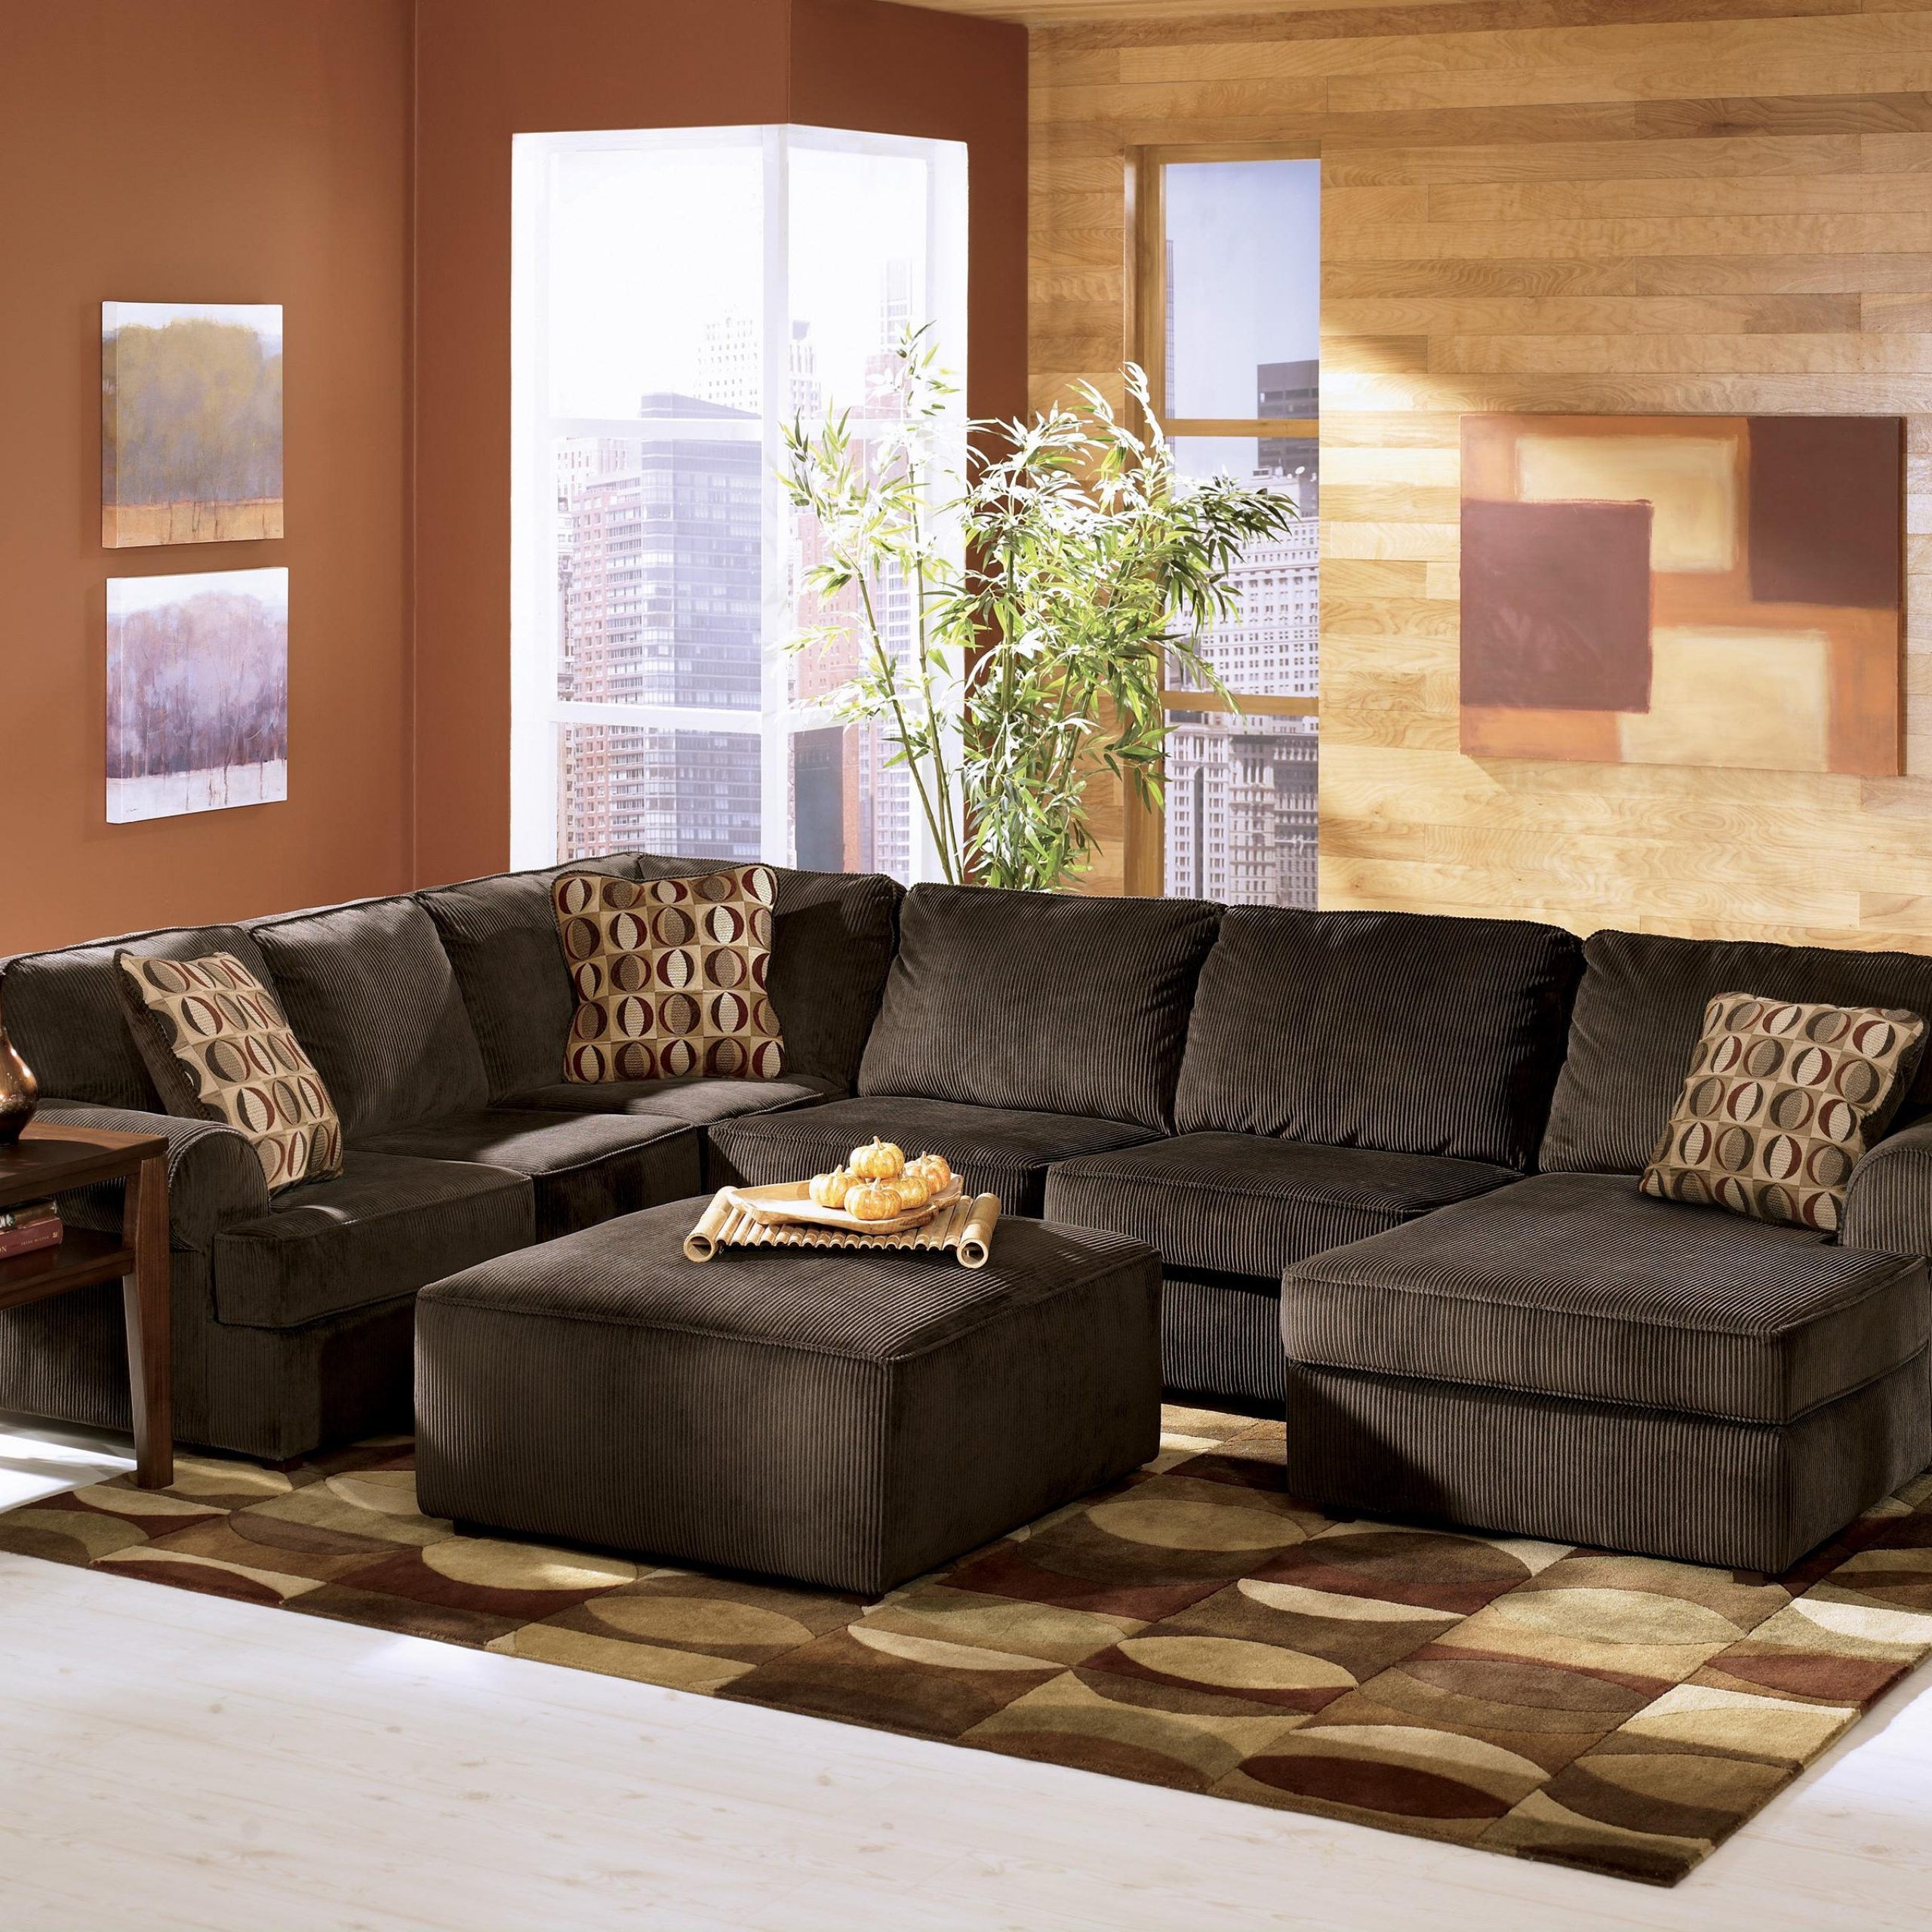 Vista – Chocolate (68404)Ashley Furniture – Del Sol Pertaining To 2Pc Luxurious And Plush Corduroy Sectional Sofas Brown (View 12 of 15)